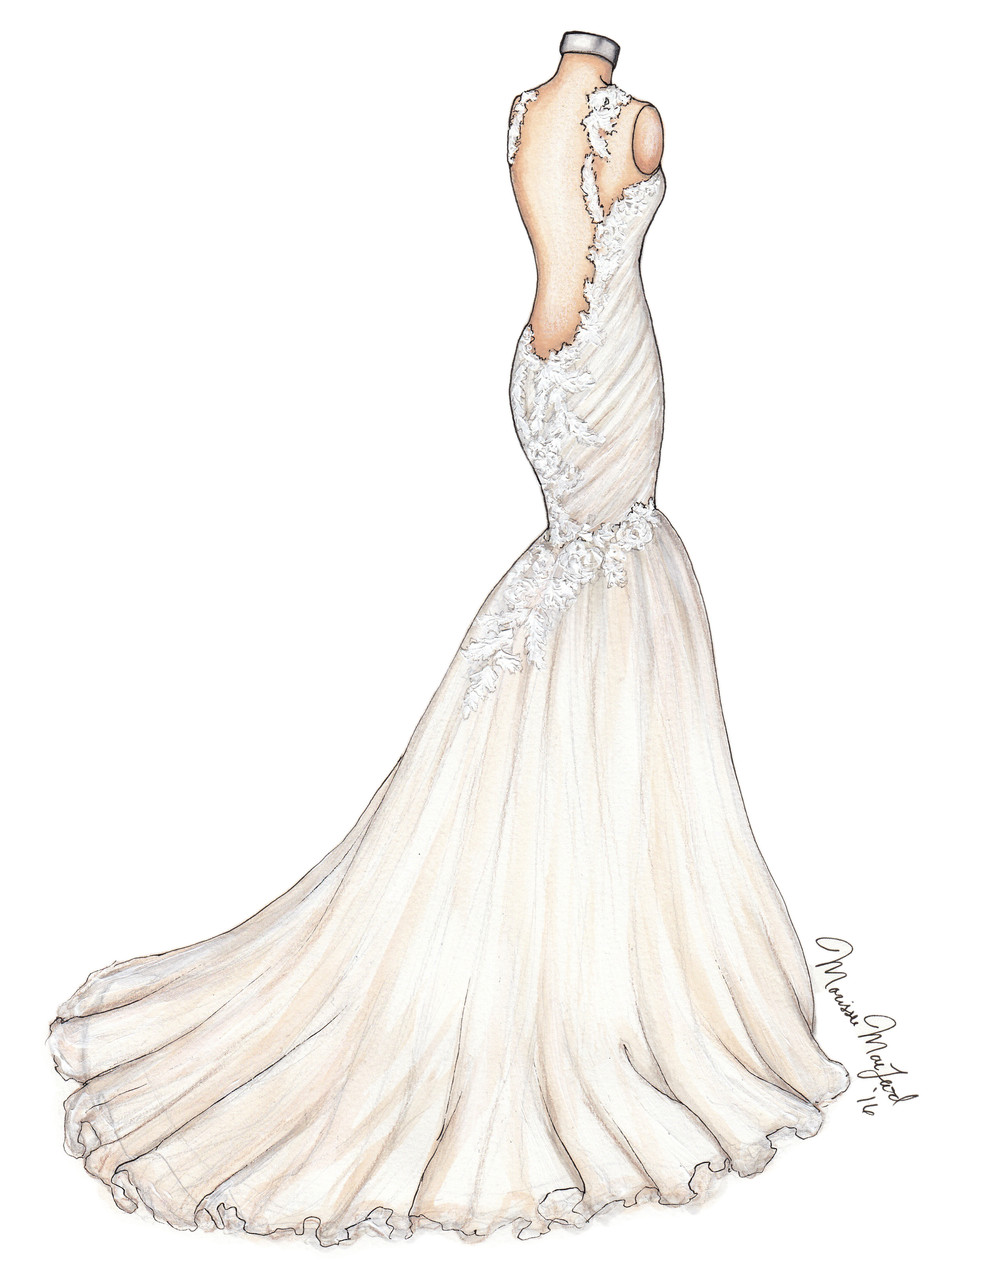 Ines Di Santo Rome Lace Wedding Gown Illustration by Marissa MacLeod of Dally Creativity Co.